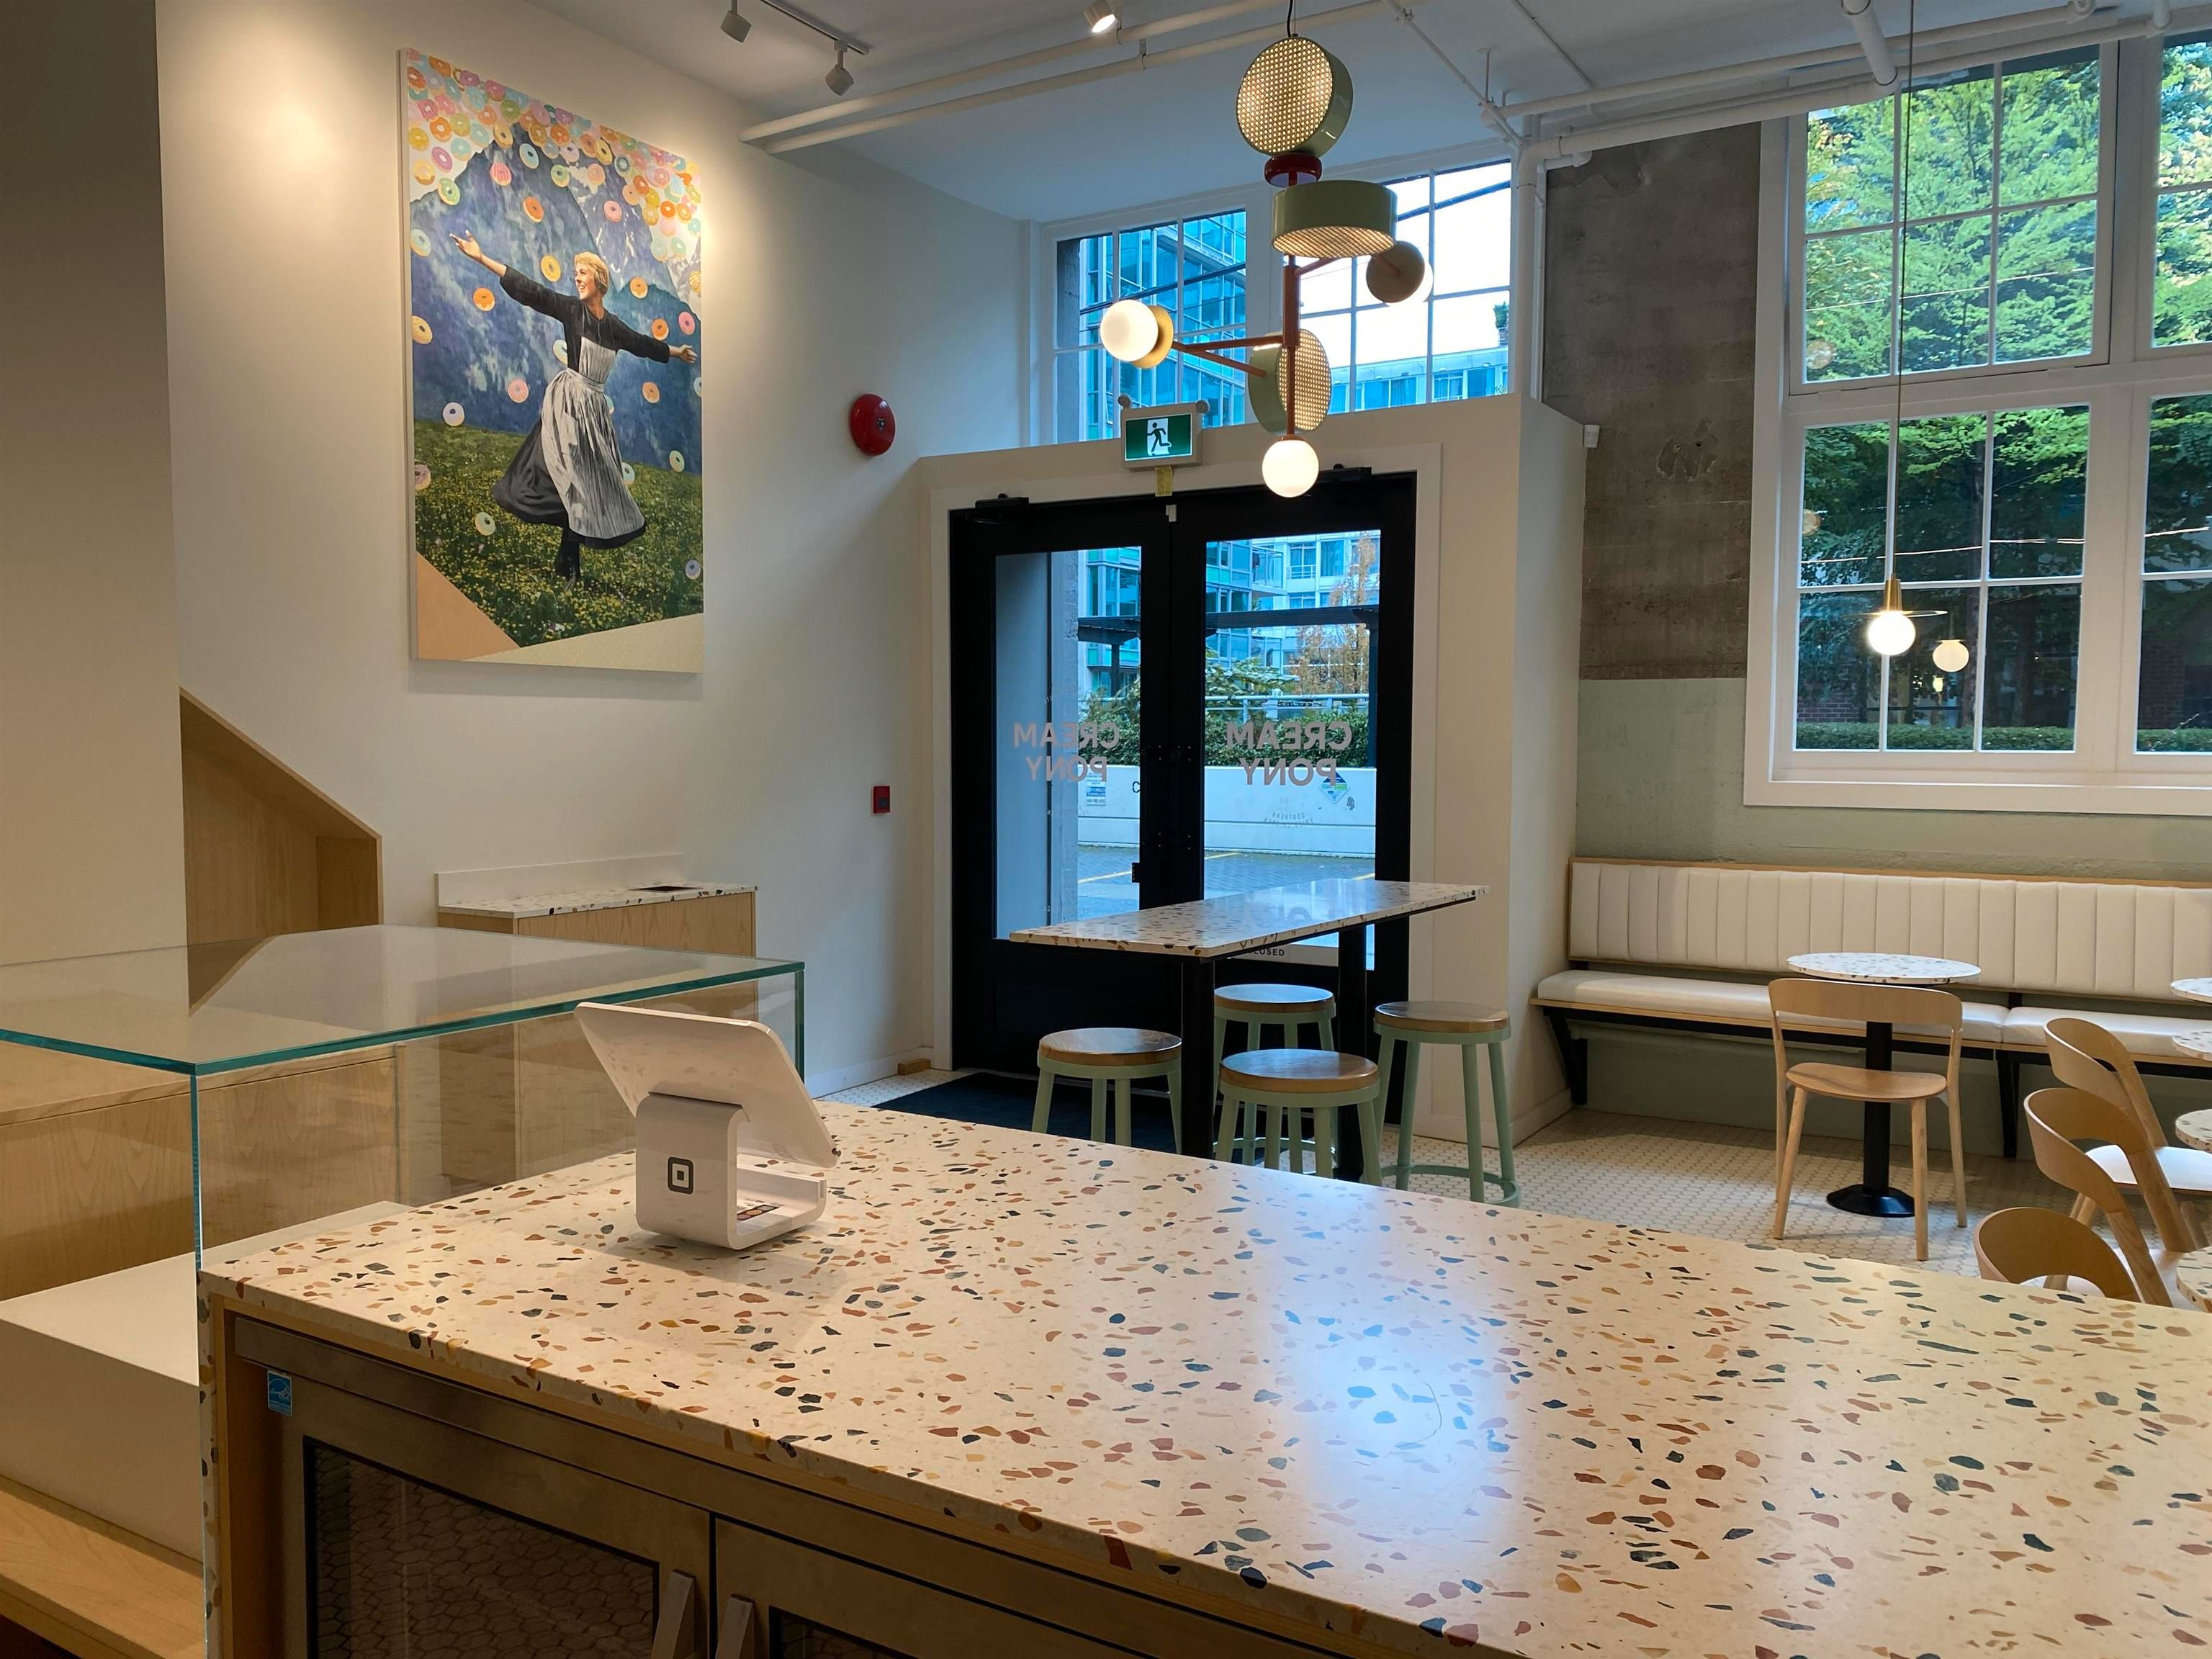 Main Photo: 9977 CONFIDENTIAL in North Vancouver: Lower Lonsdale Business for sale : MLS®# C8040213